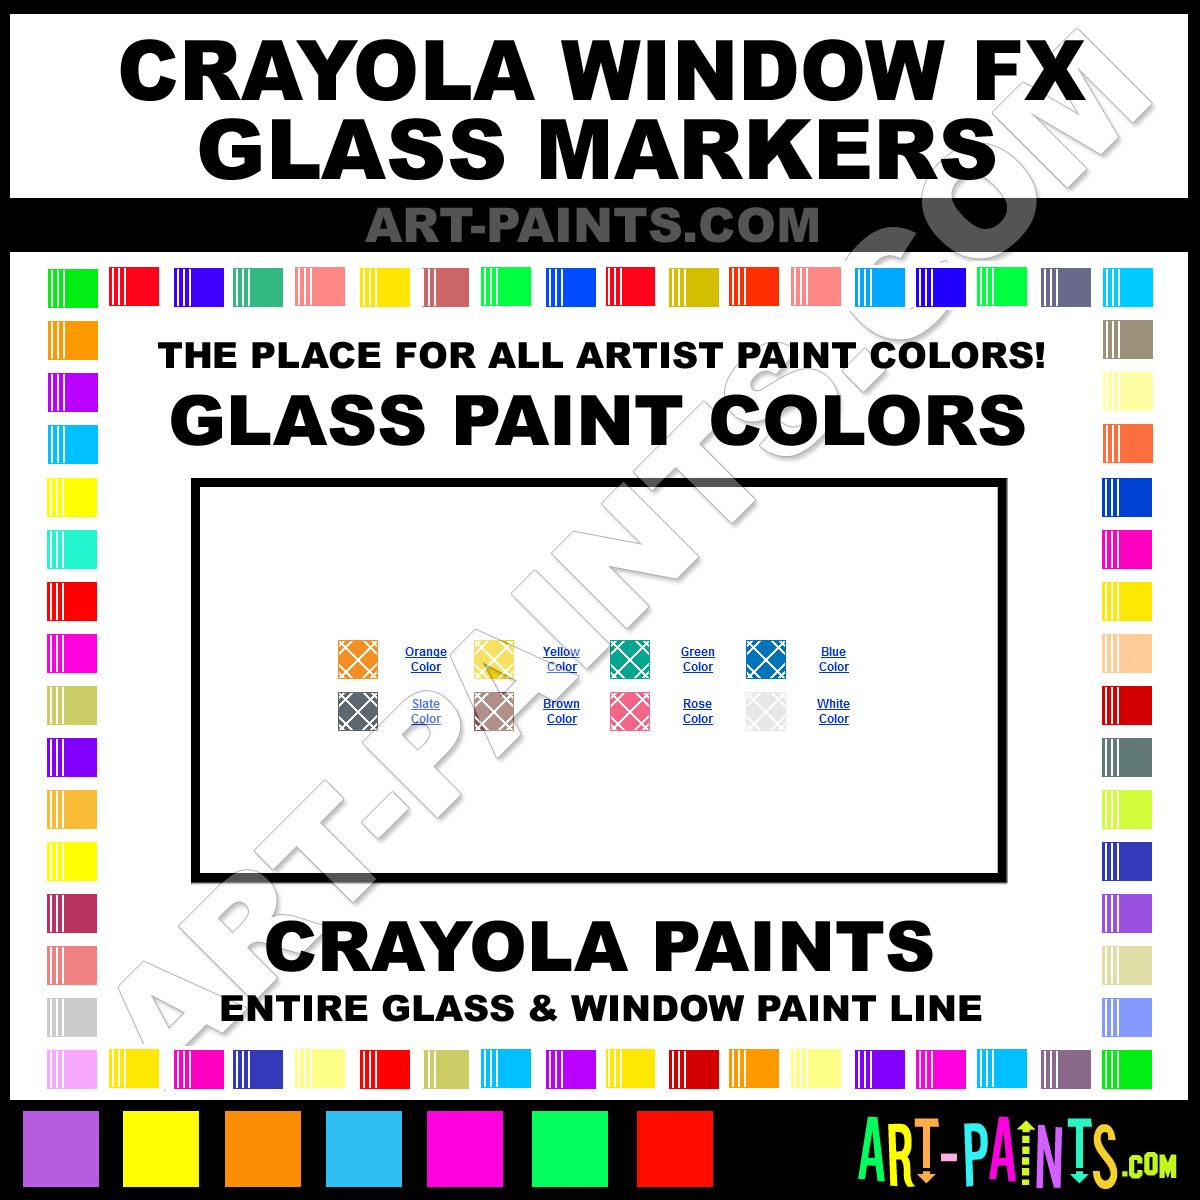 rose window fx markers stained glass window paints 21258 rose